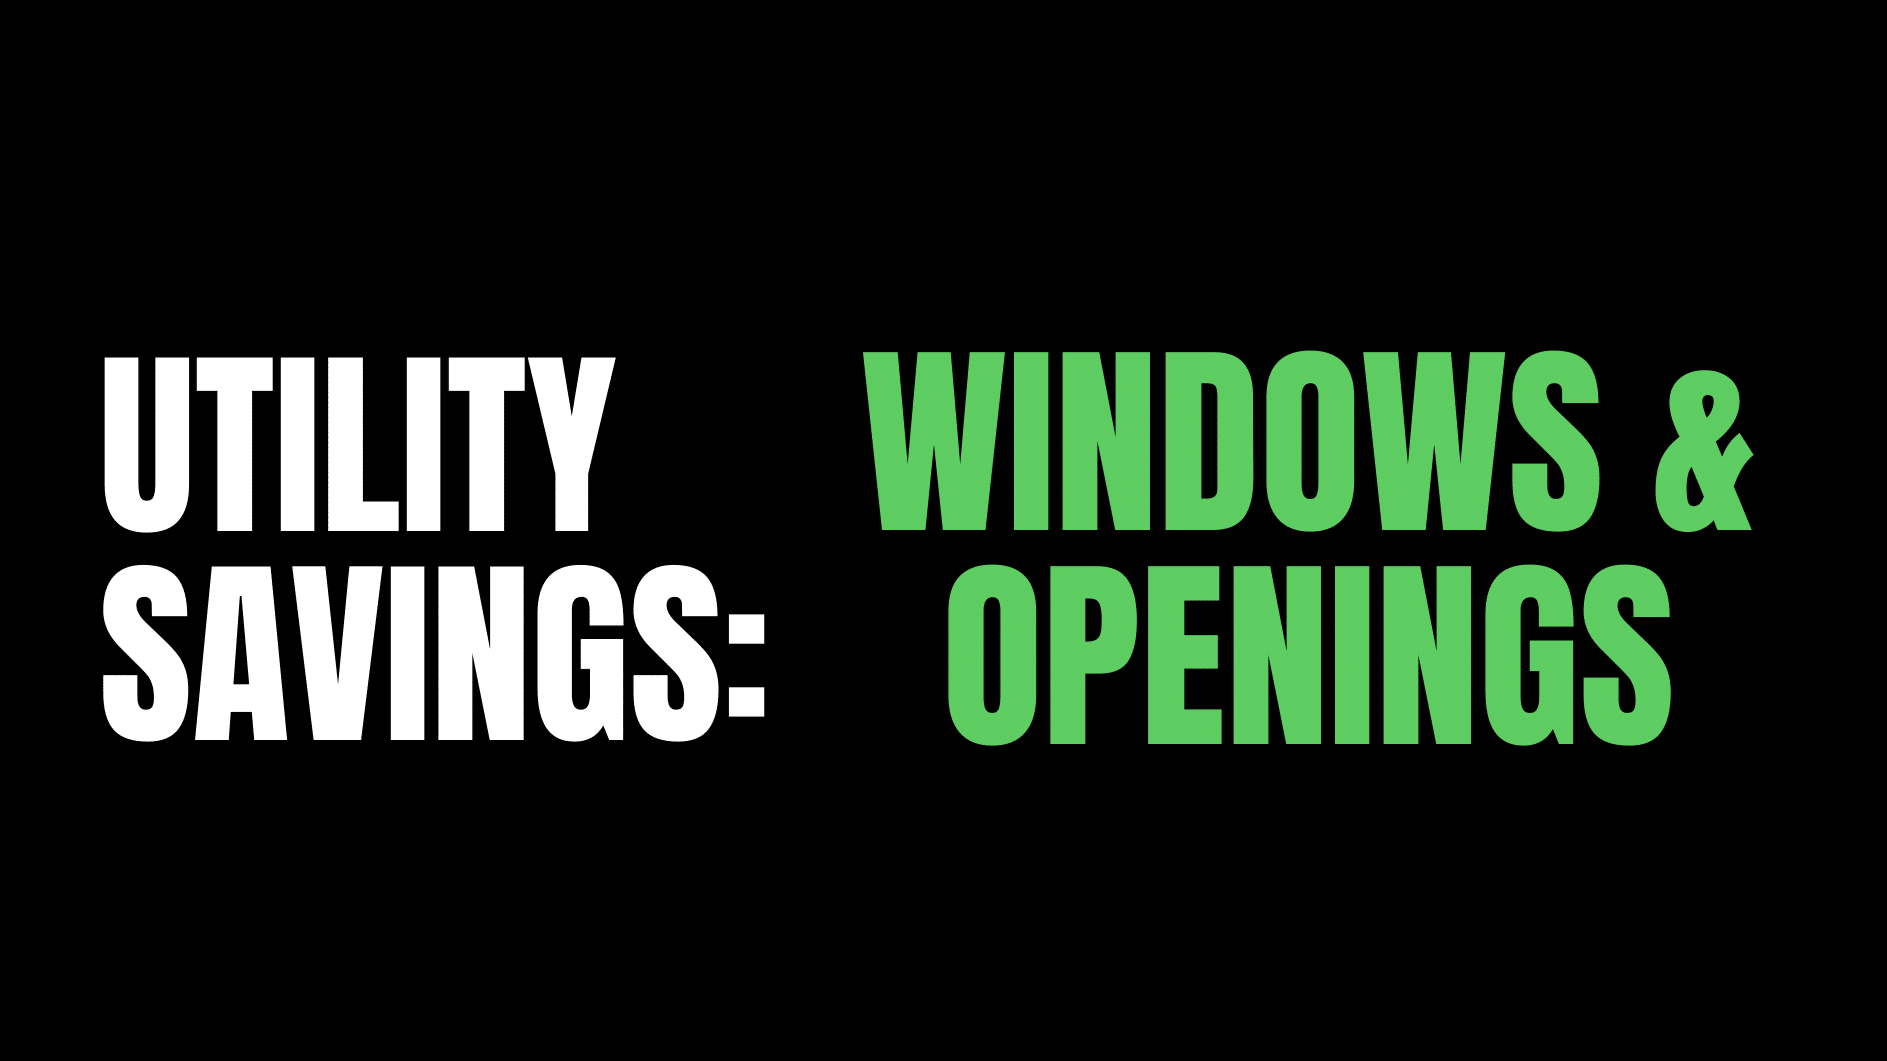 Utility and energy savings from upgrading windows and doors